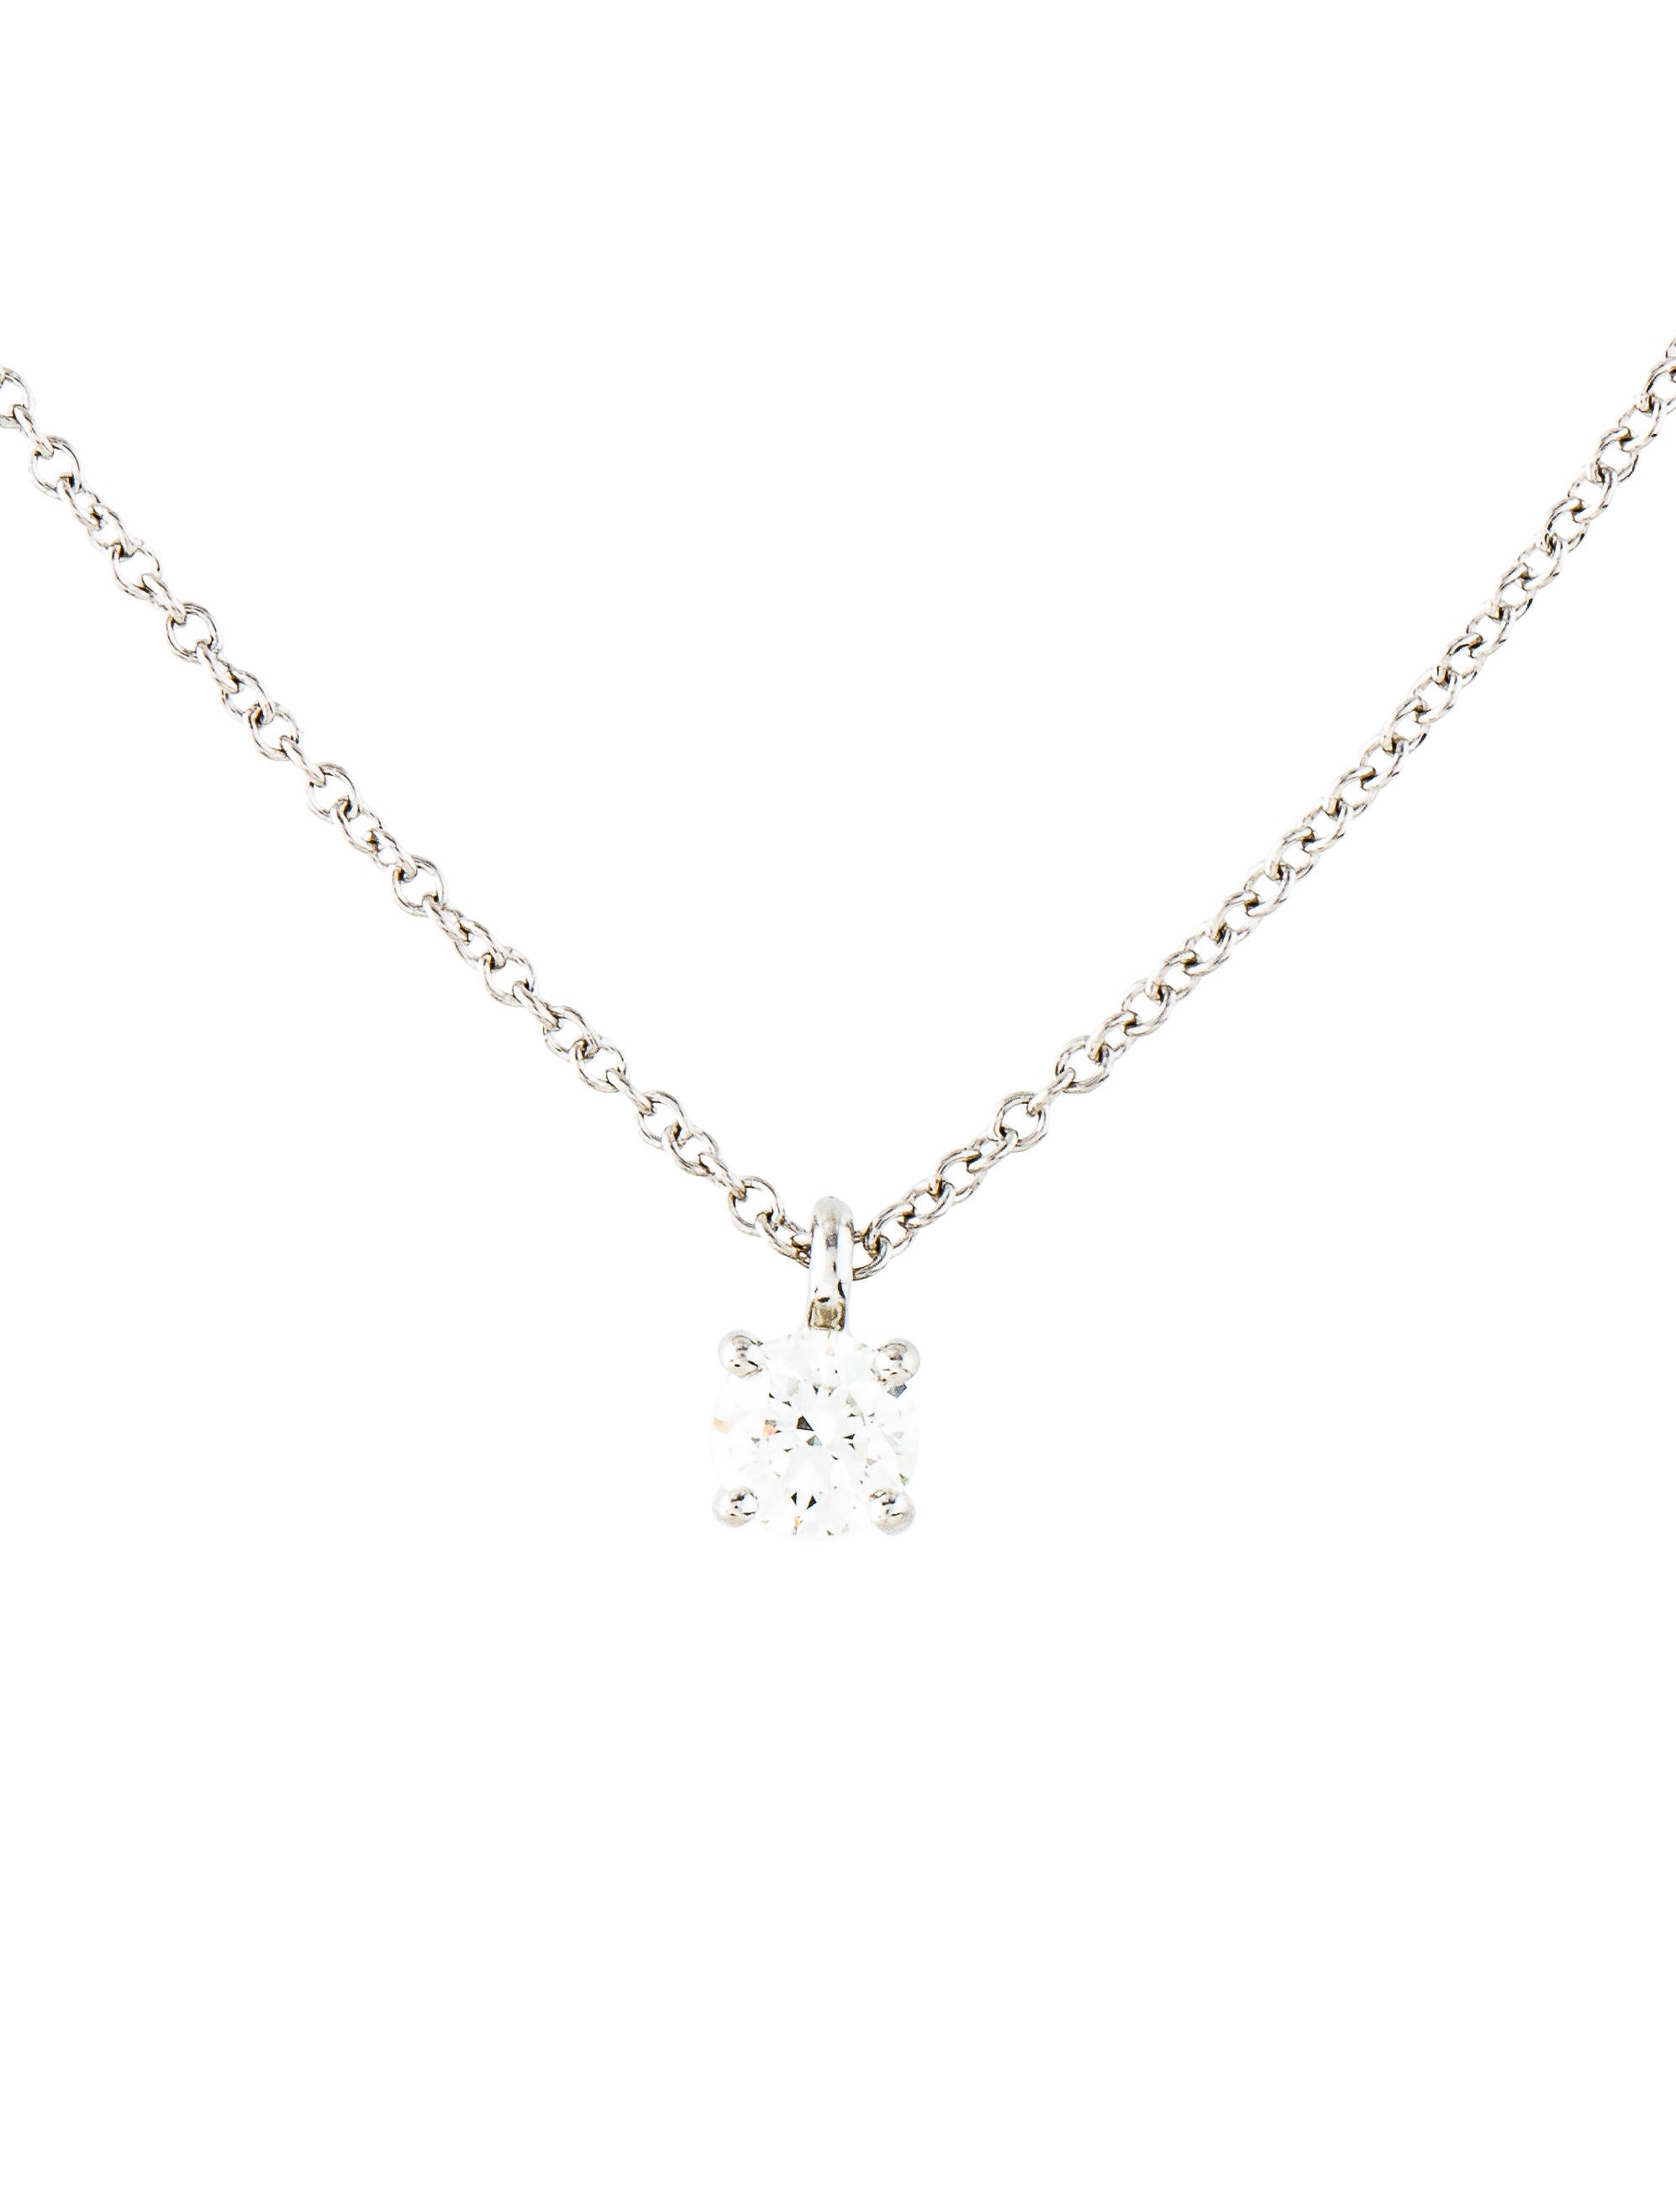 tiffany diamond necklace bee enchant co garden platinum pendant at truefacet buy